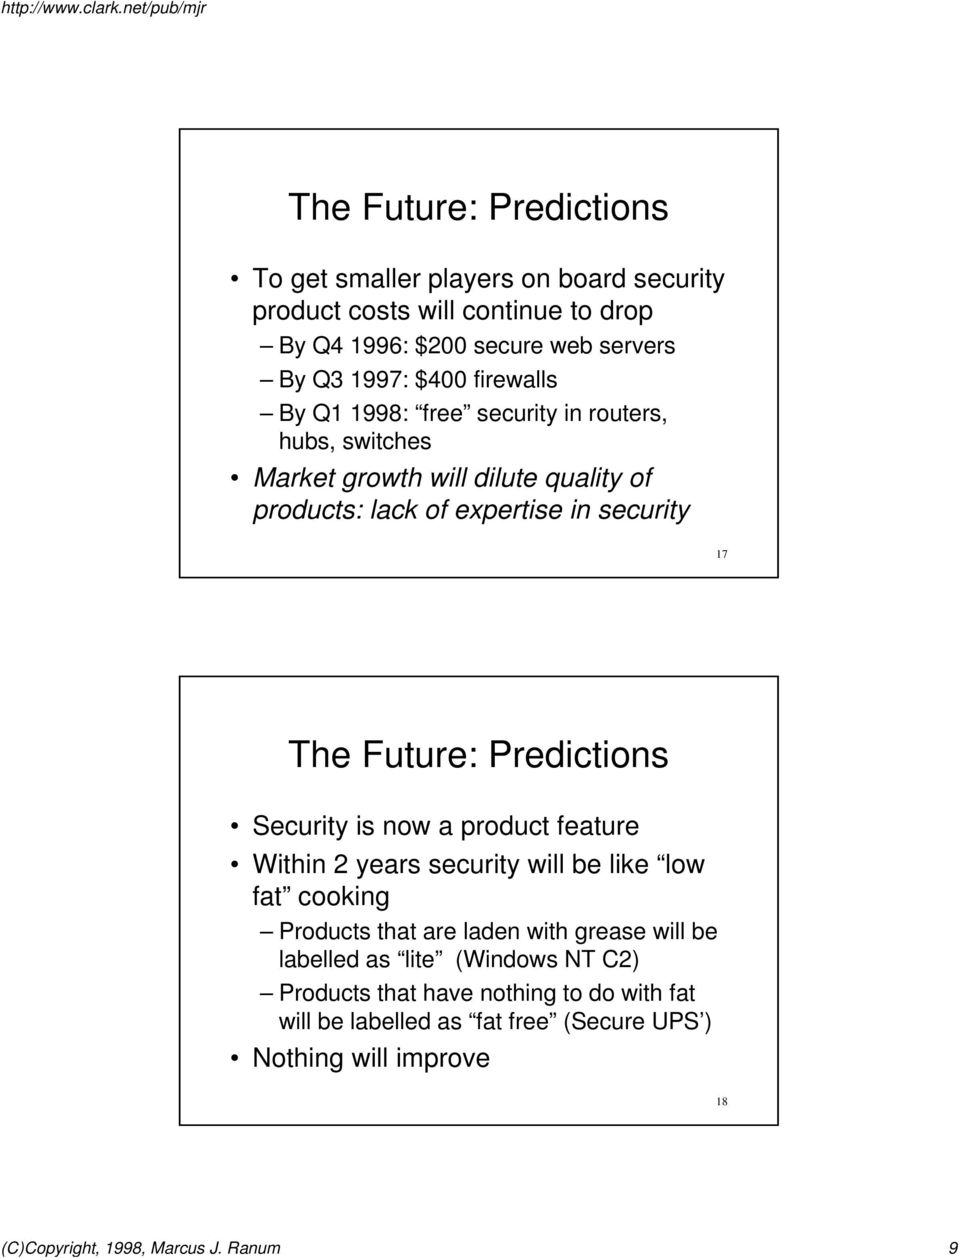 Predictions Security is now a product feature Within 2 years security will be like low fat cooking Products that are laden with grease will be labelled as